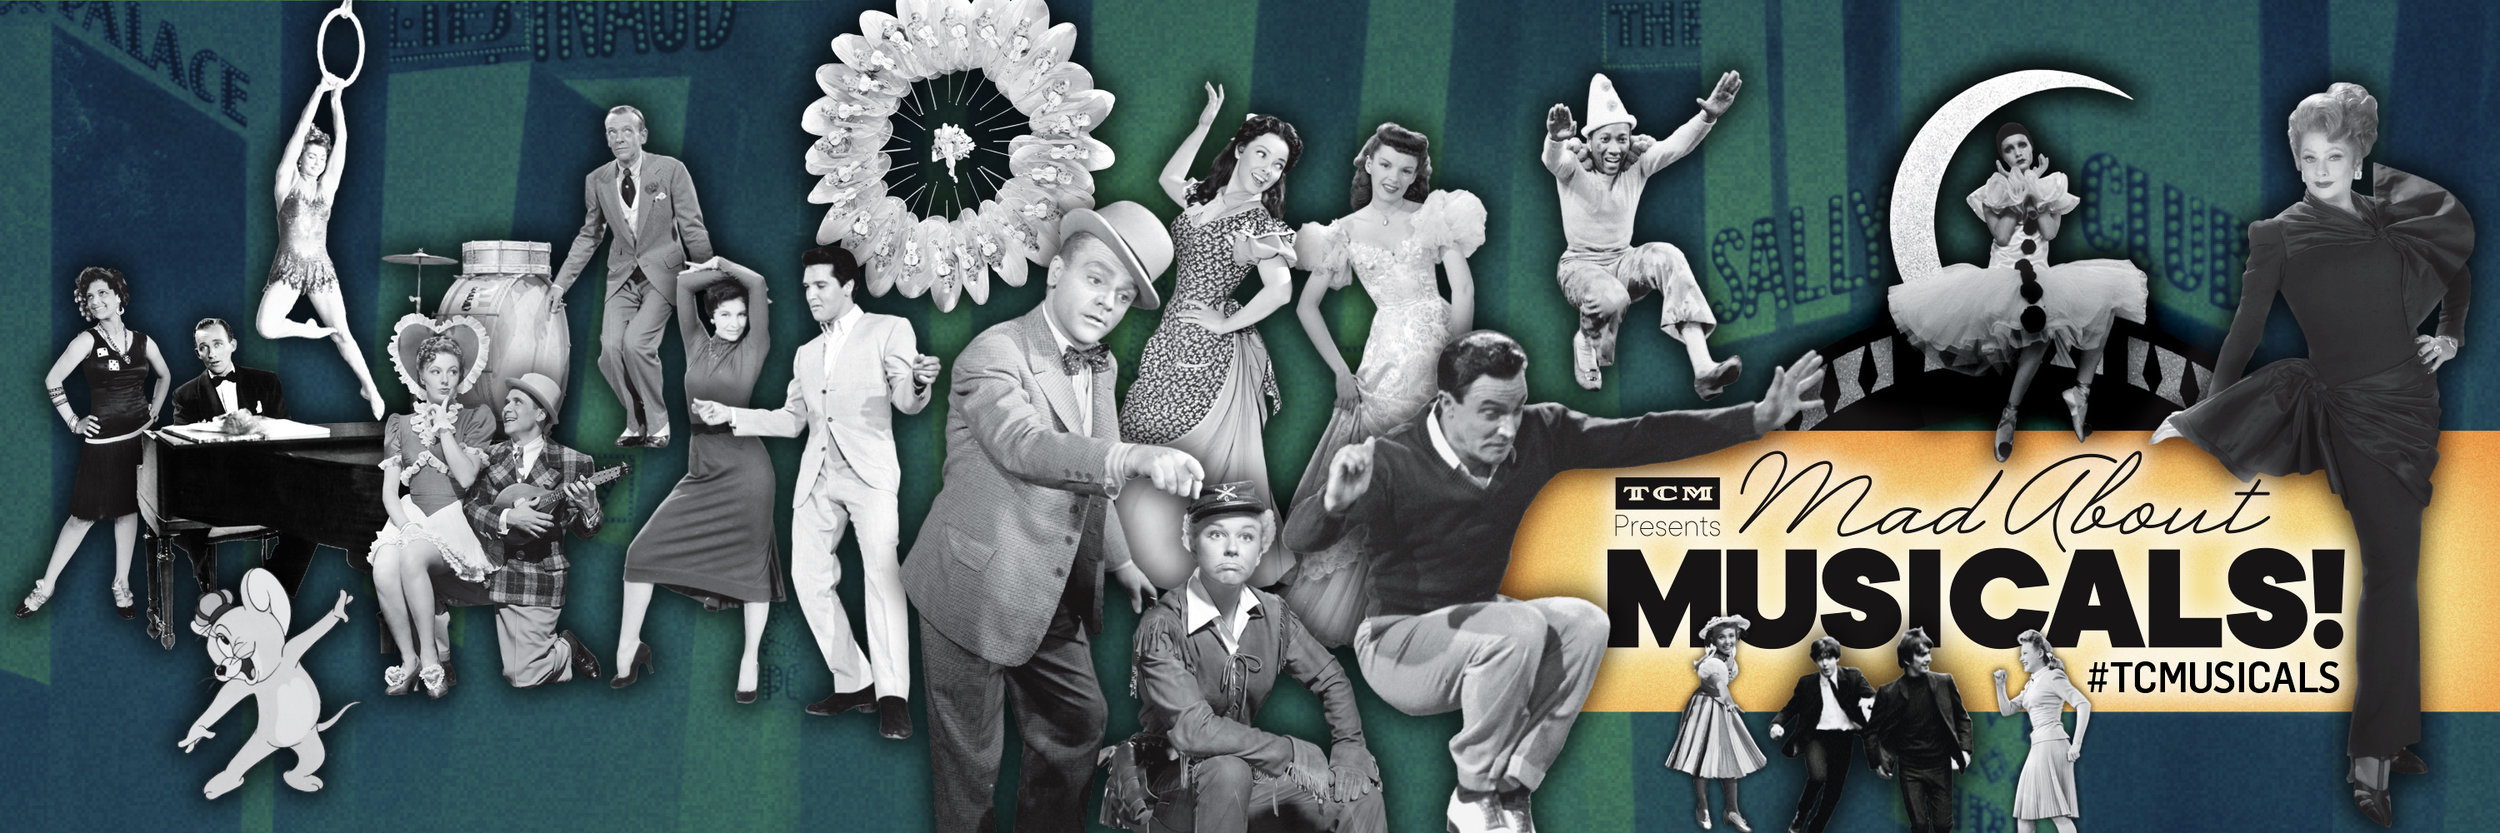 TCM_SocialCovers_18-06_MadAboutMusicals_Concepts_RD3-A.jpg